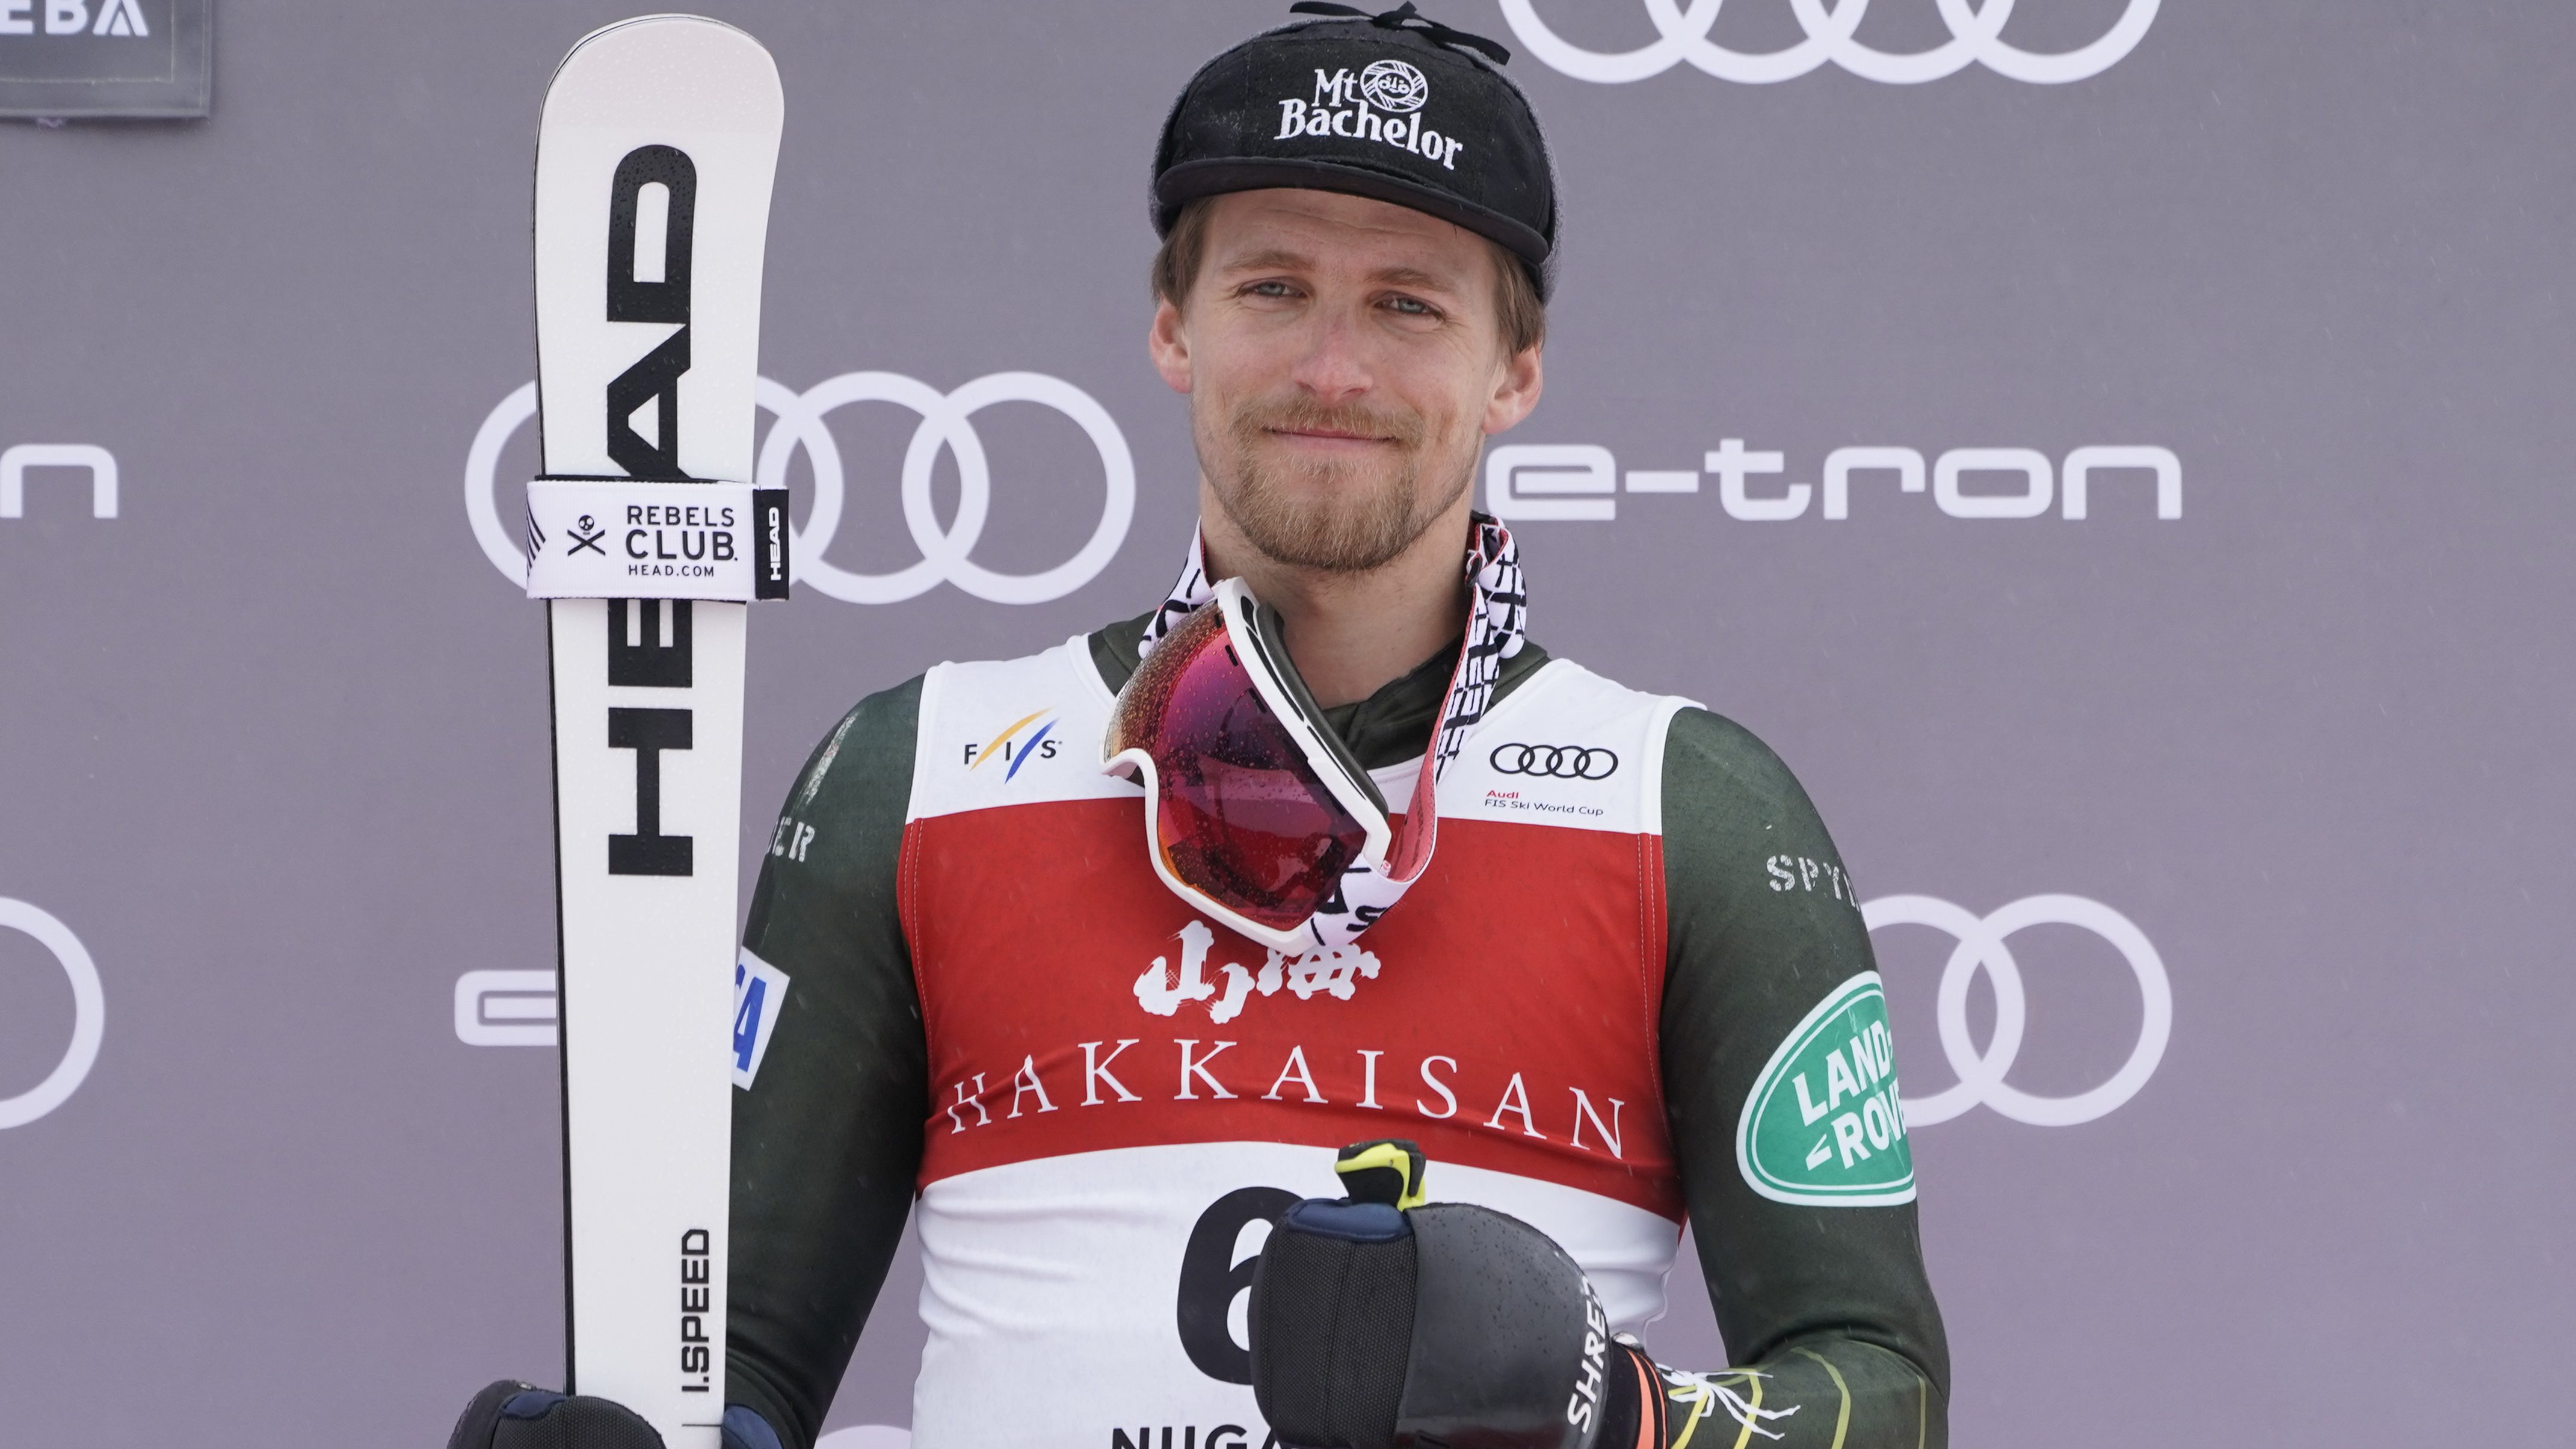 Tommy Ford returns to giant slalom podium in Japan